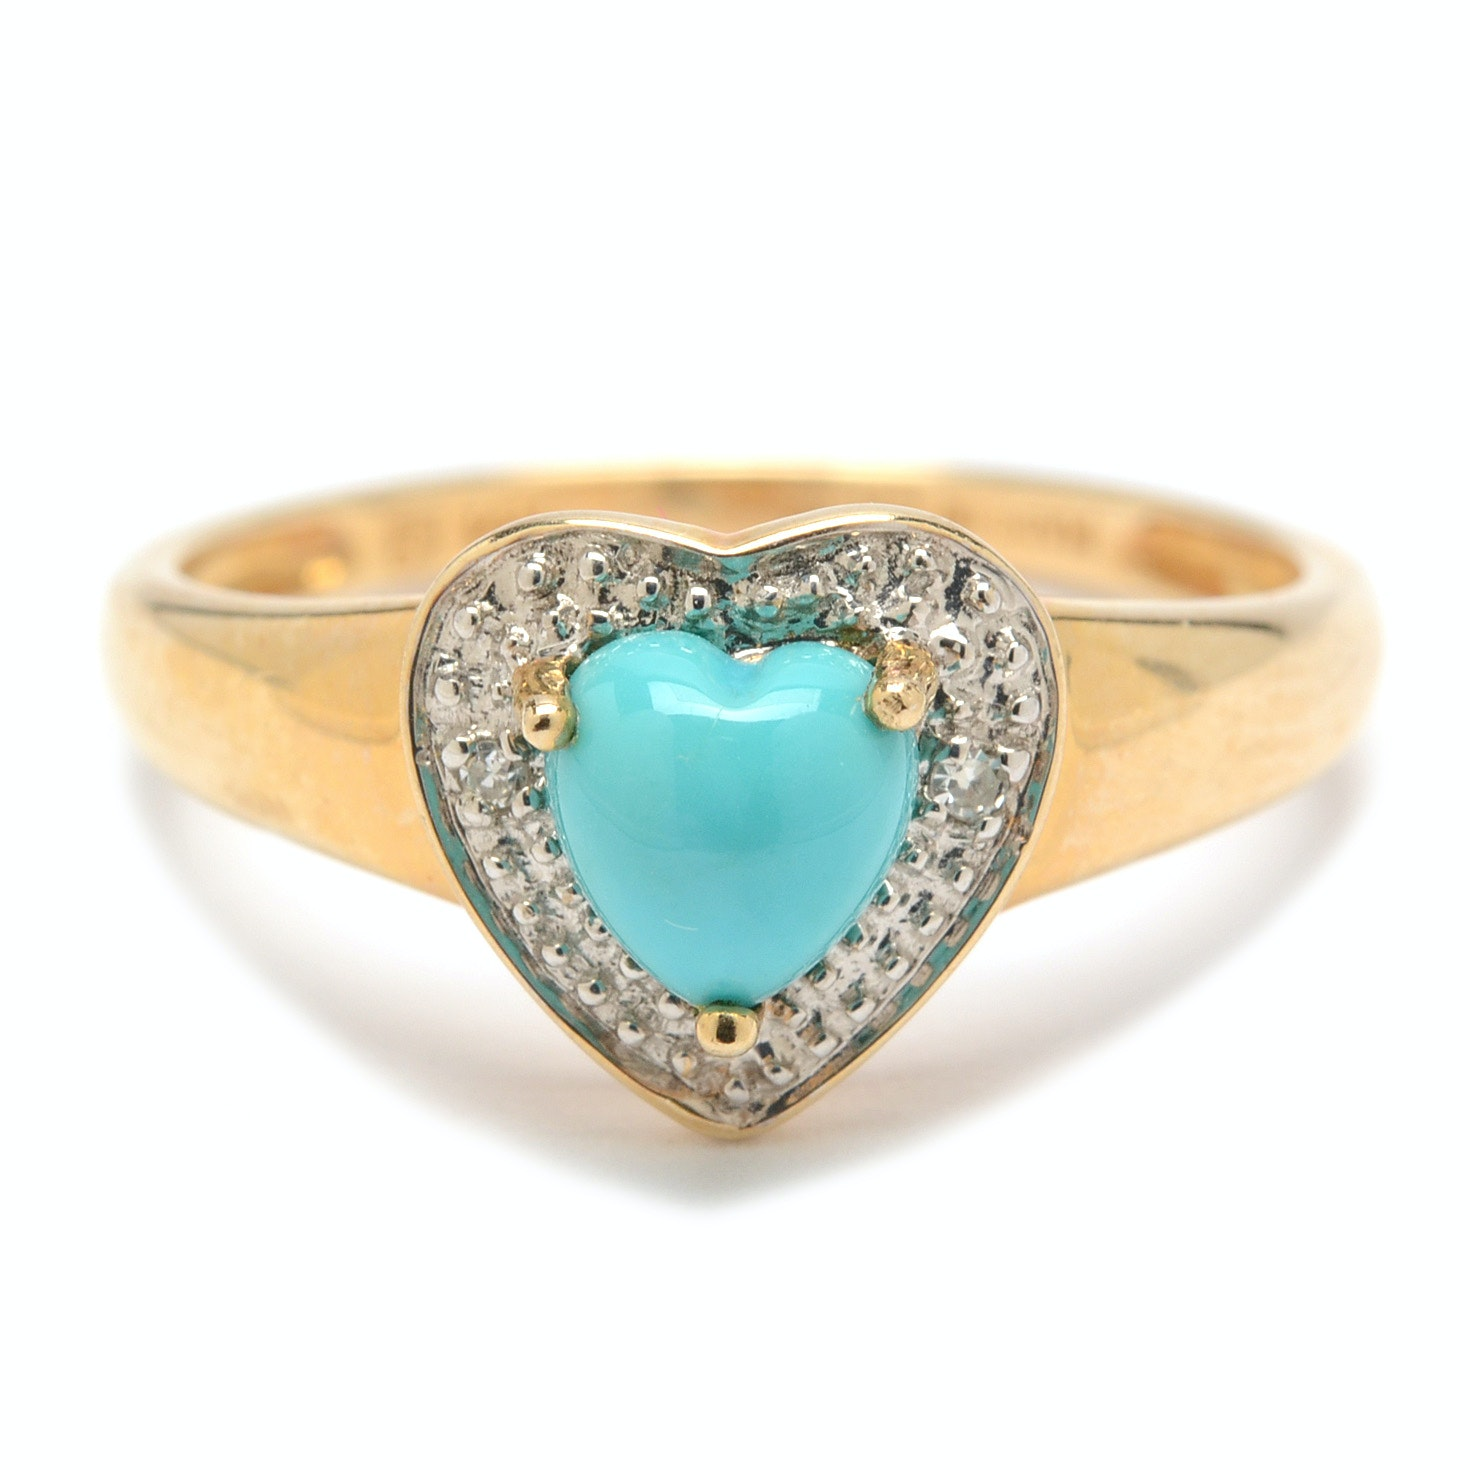 14K Yellow Gold Turquoise and Diamond Ring